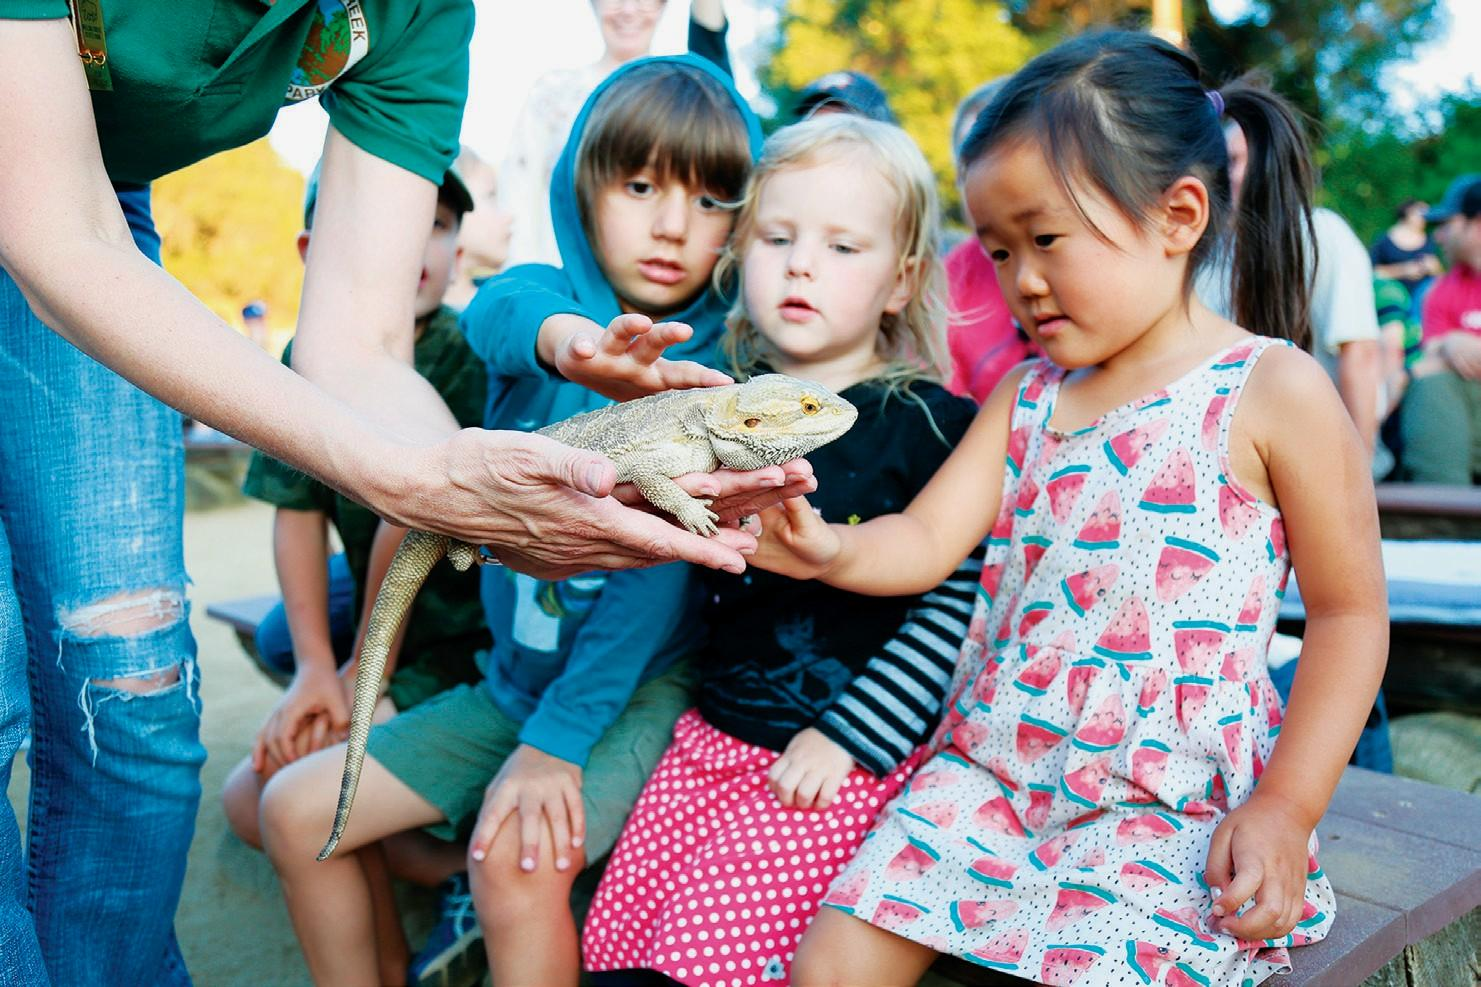 HANDS-ON—Above, Ben Barron, 5, his 3-year-old sister, Nora, and Jennifer Sun, 4, pet a bearded dragon. Left, J.P. Glynn, 8, of Agoura Hills enjoys wearing the frogs.